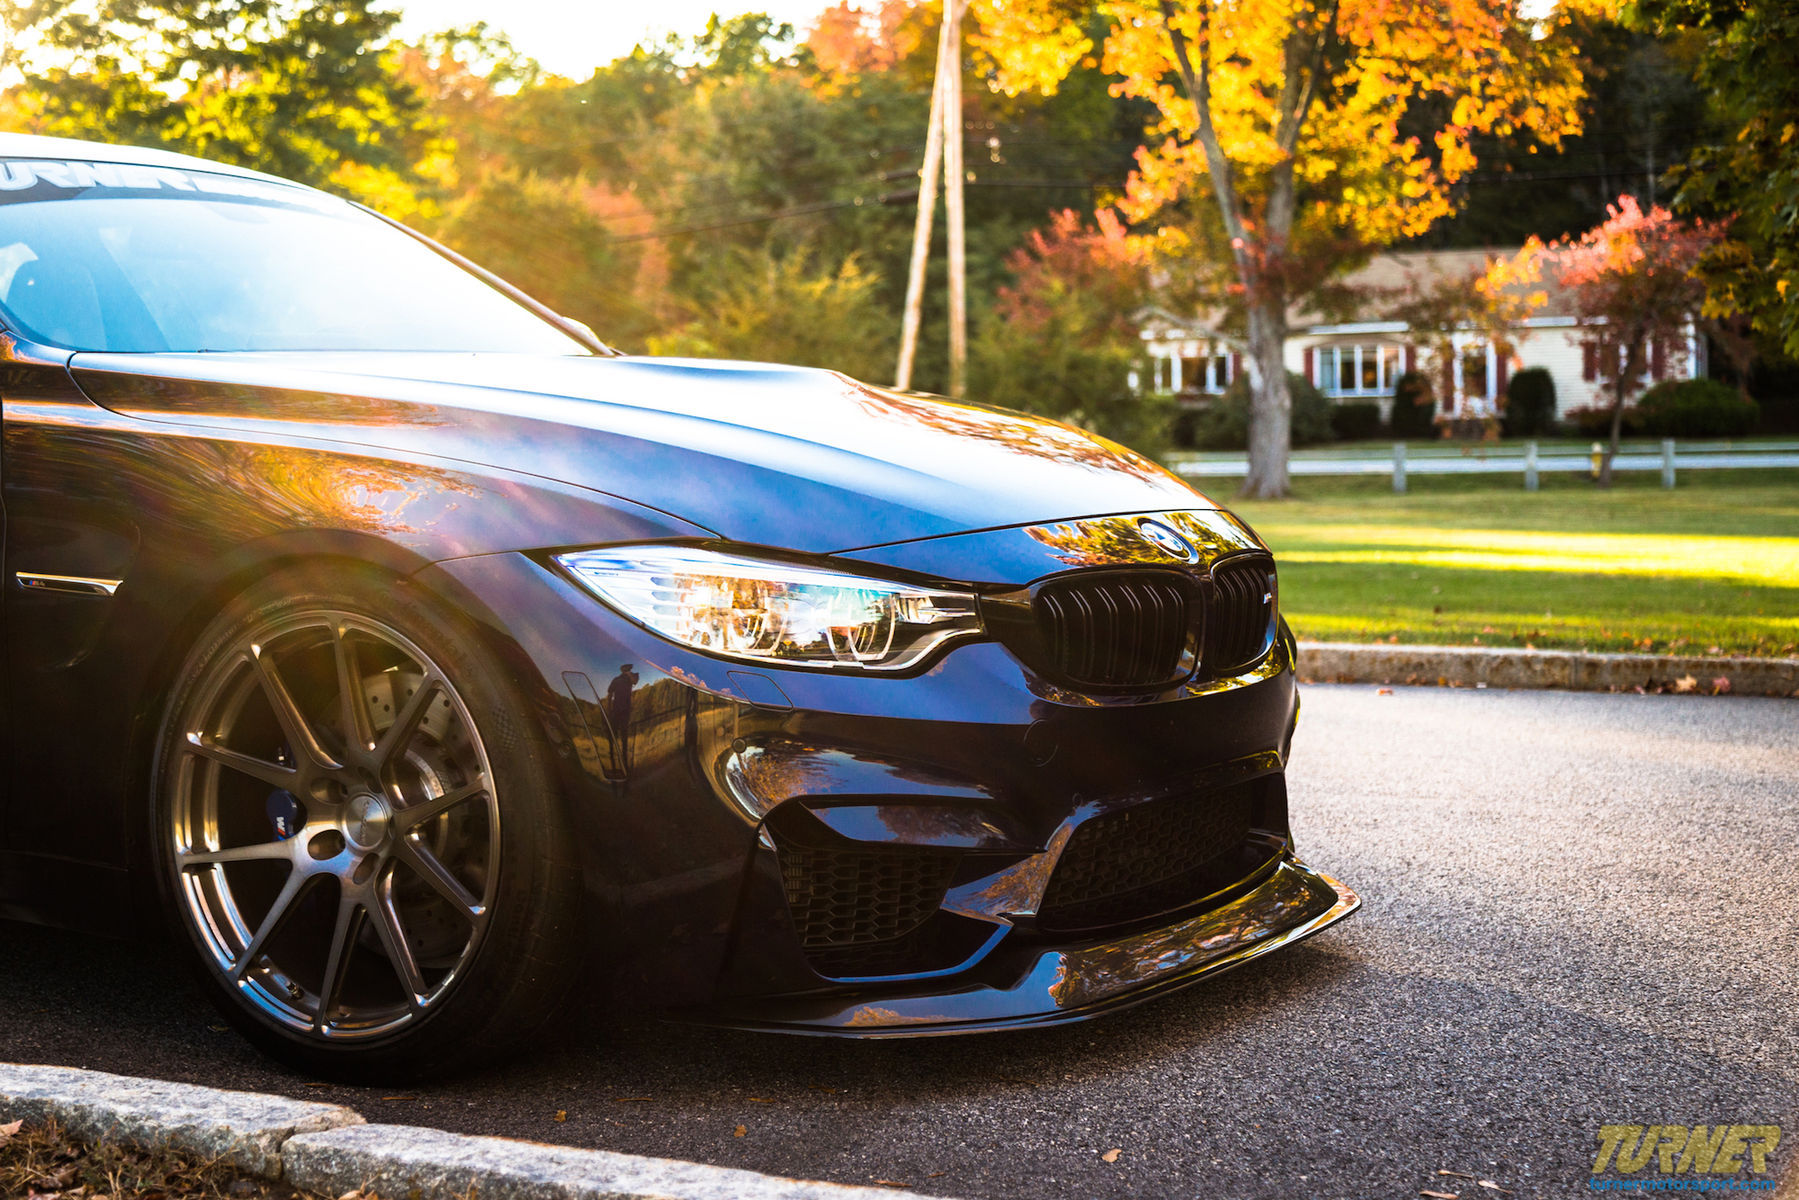 2017 BMW M4 | Turner Motorsport's BMW F82 M4 on Forgeline One Piece Forged Monoblock GA1R Wheels